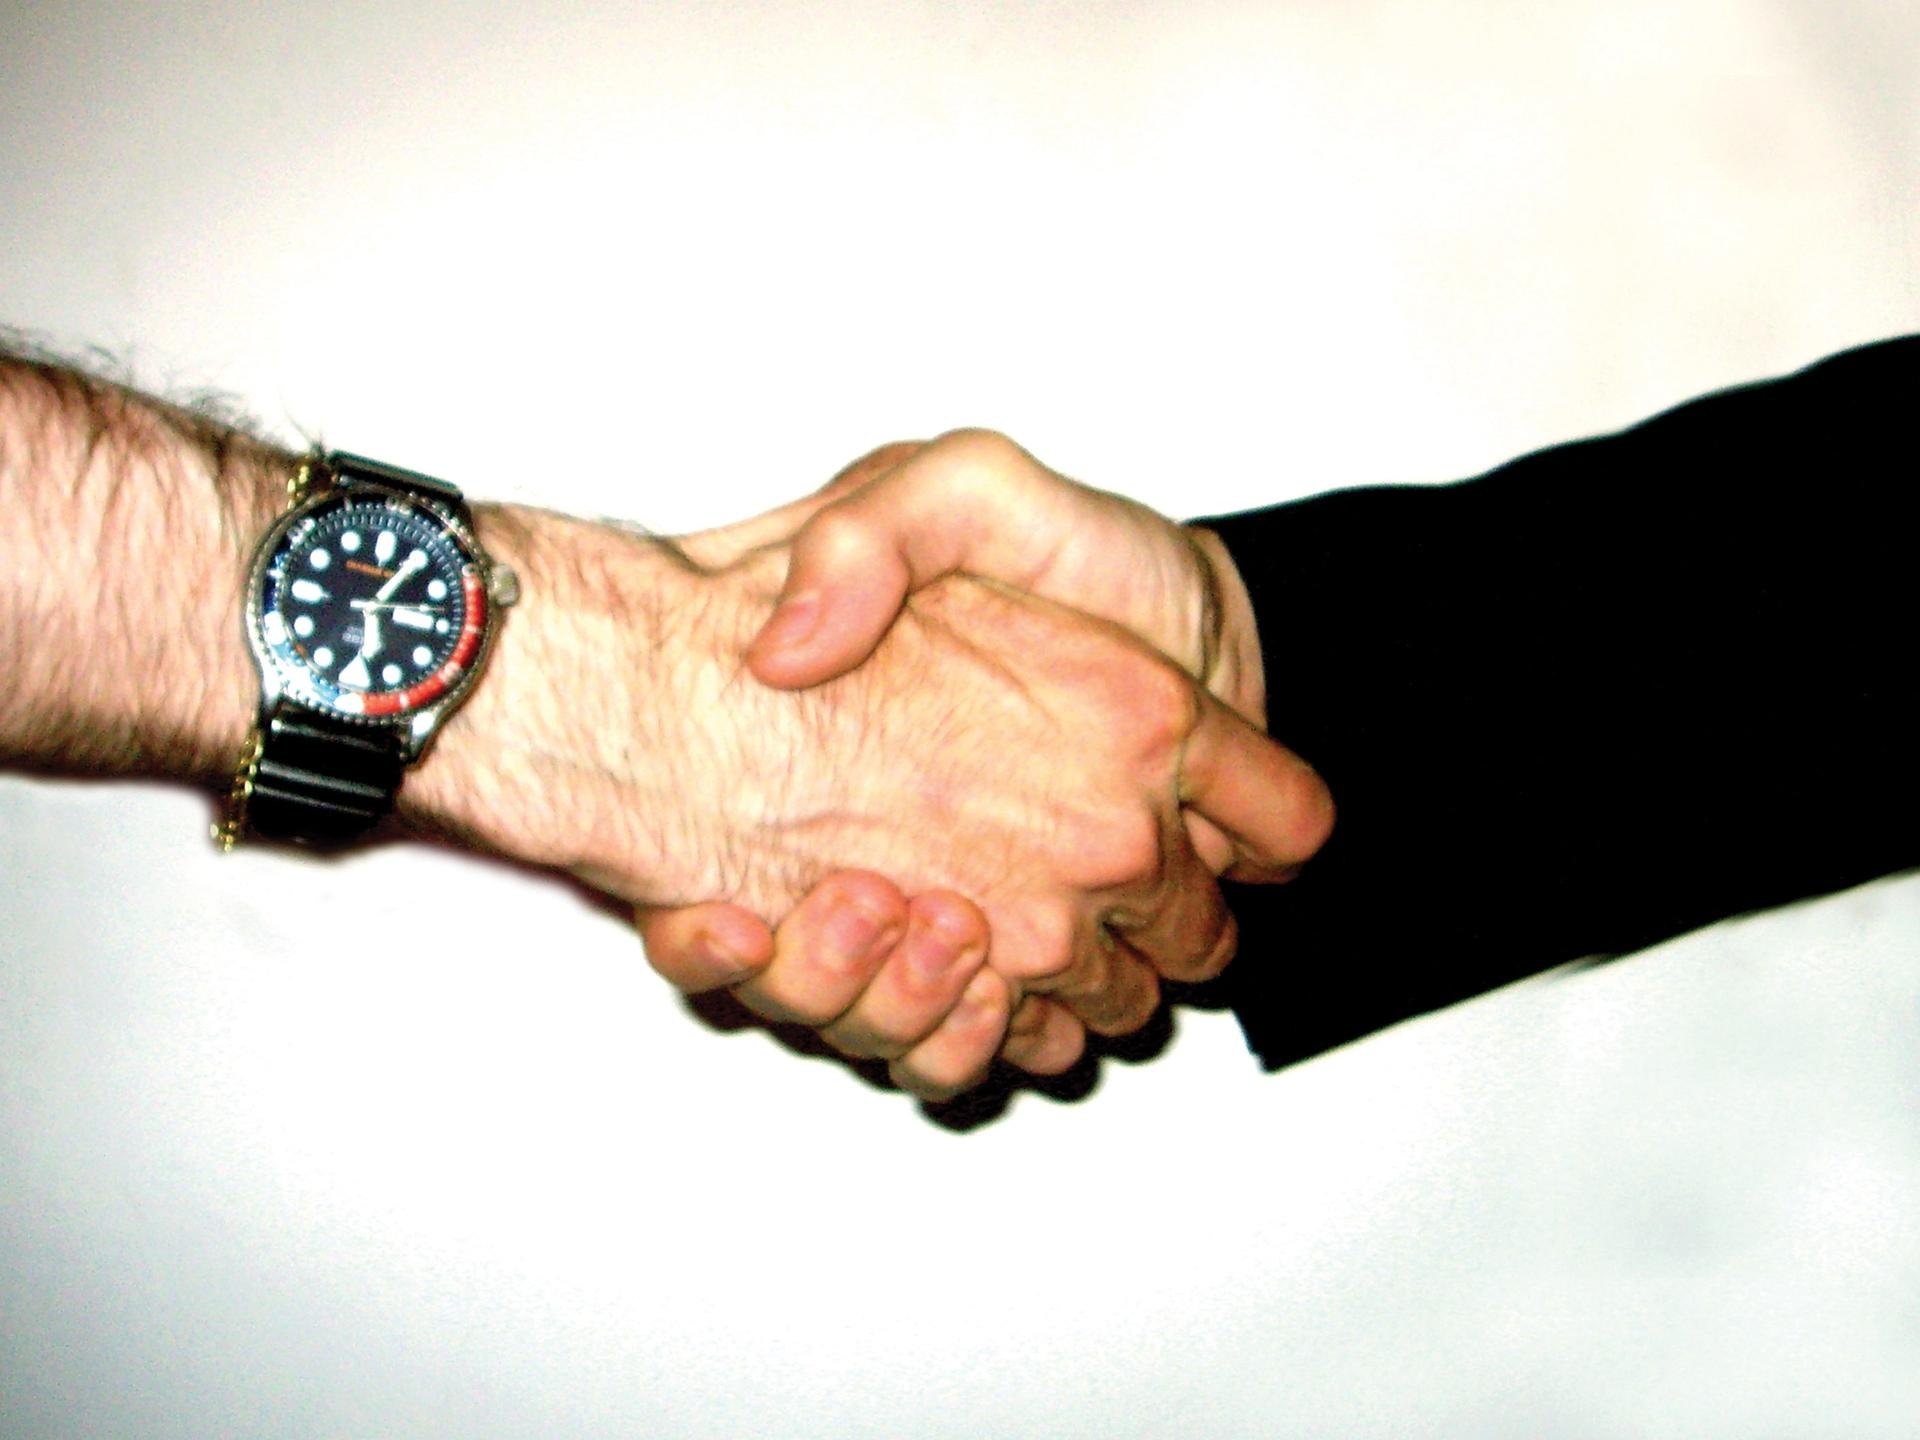 More than a handshake: having clear contracts in place is crucial between artists and galleries to avoid future disputes ©Lucas